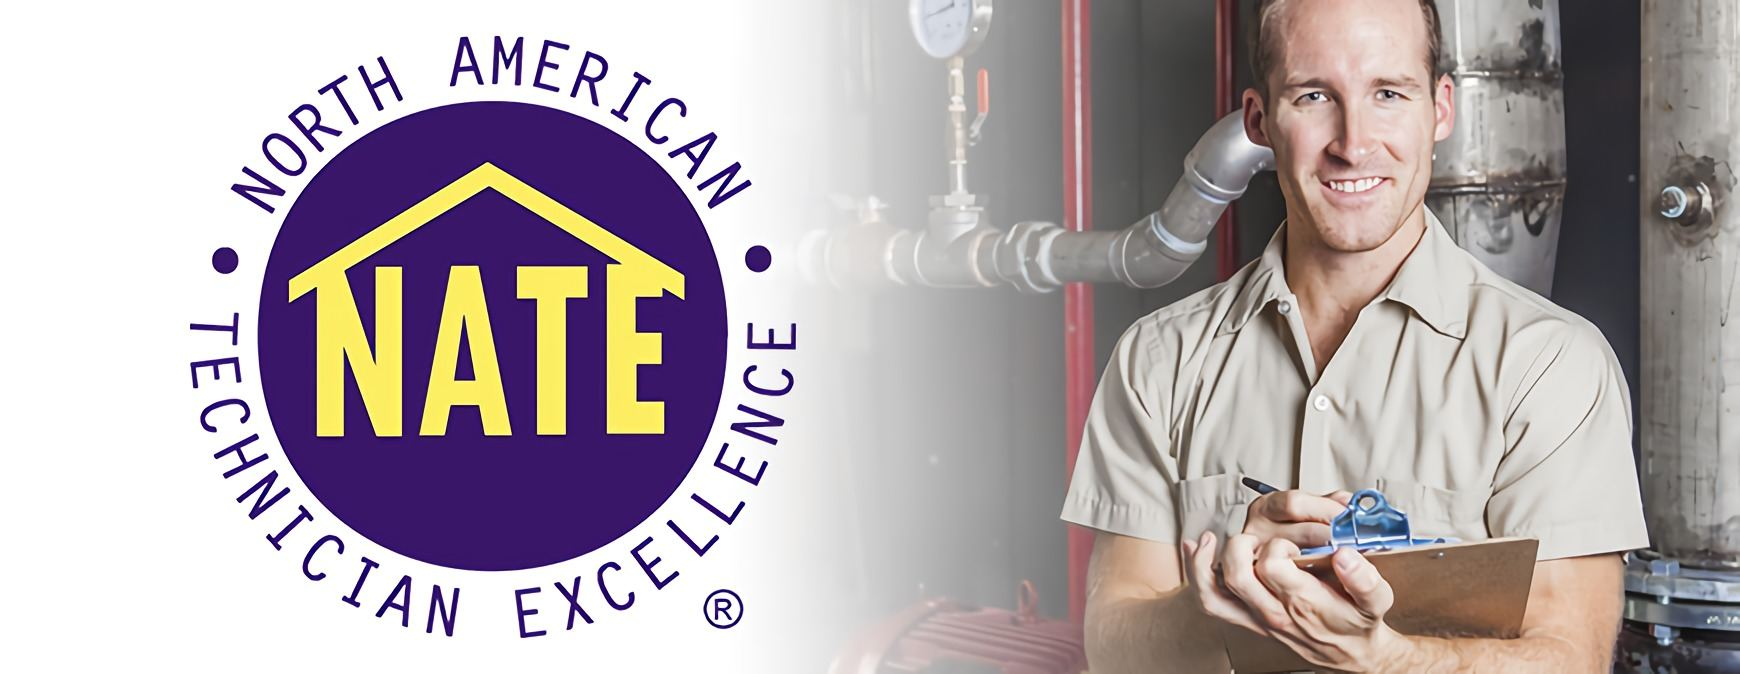 hvac technician nate certification